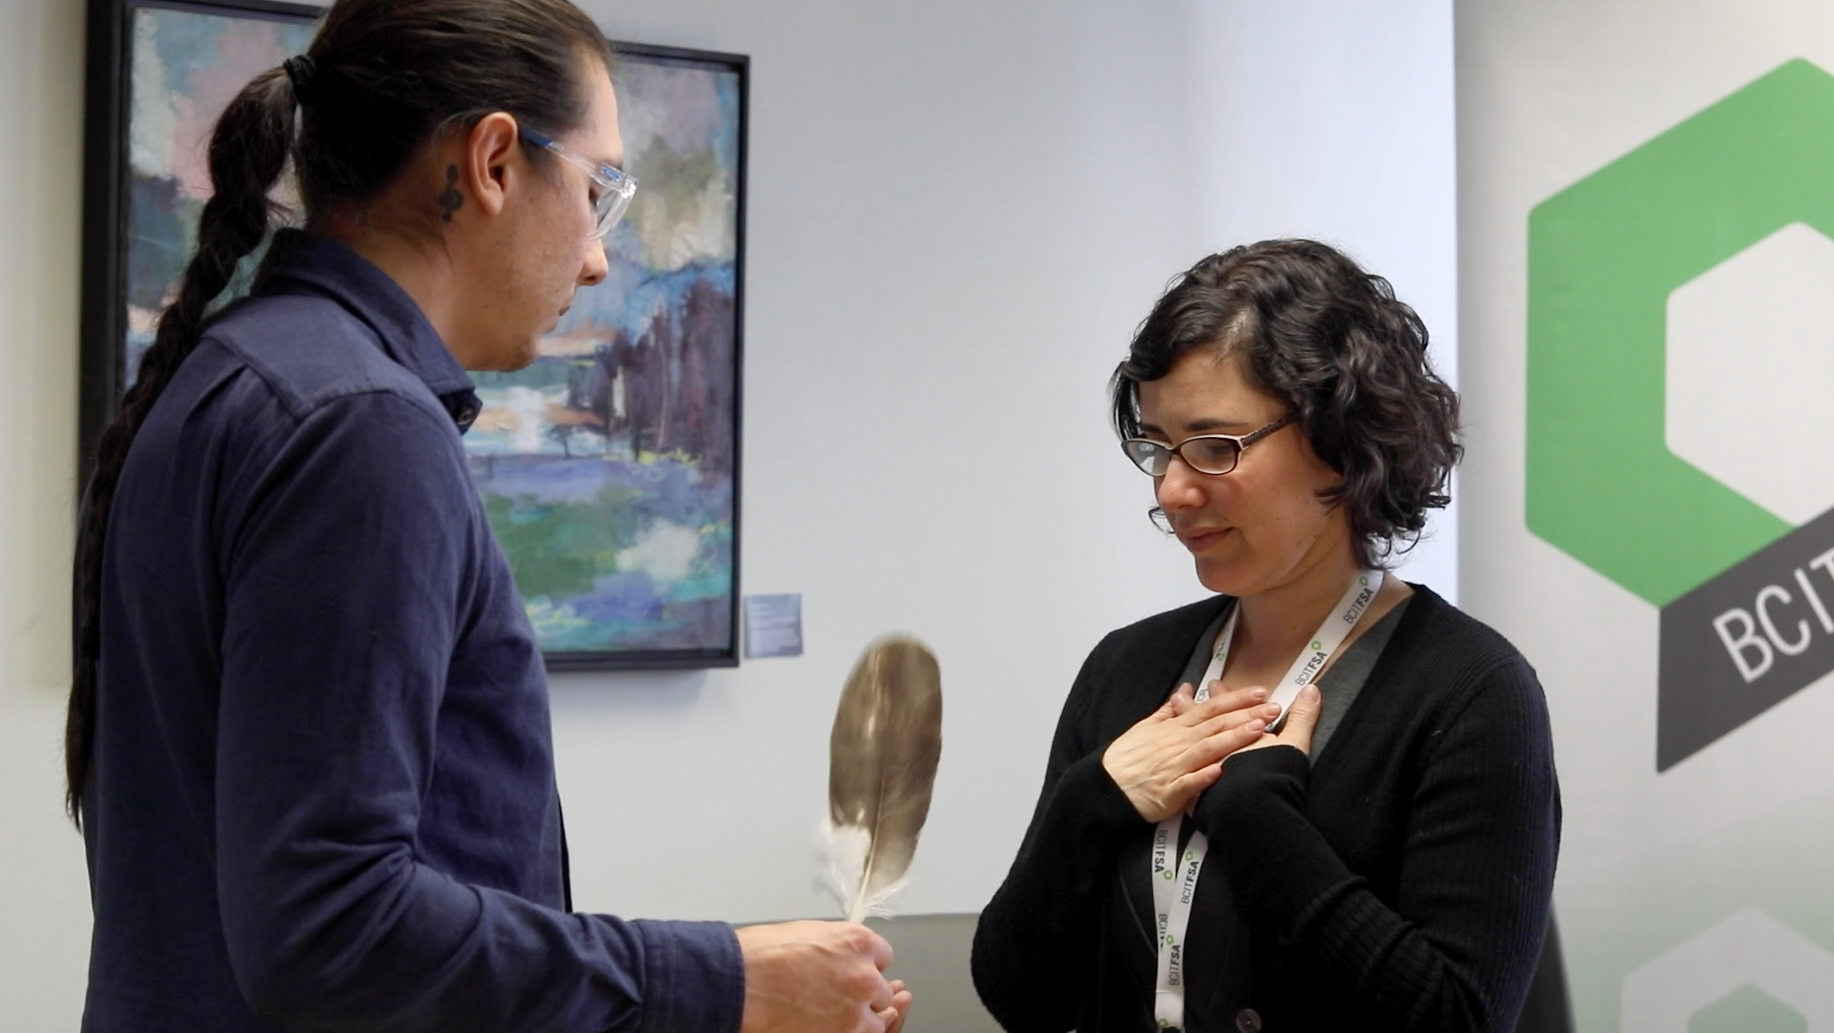 Andrew Judge shares a smudging ceremony with Kyla Epstein.